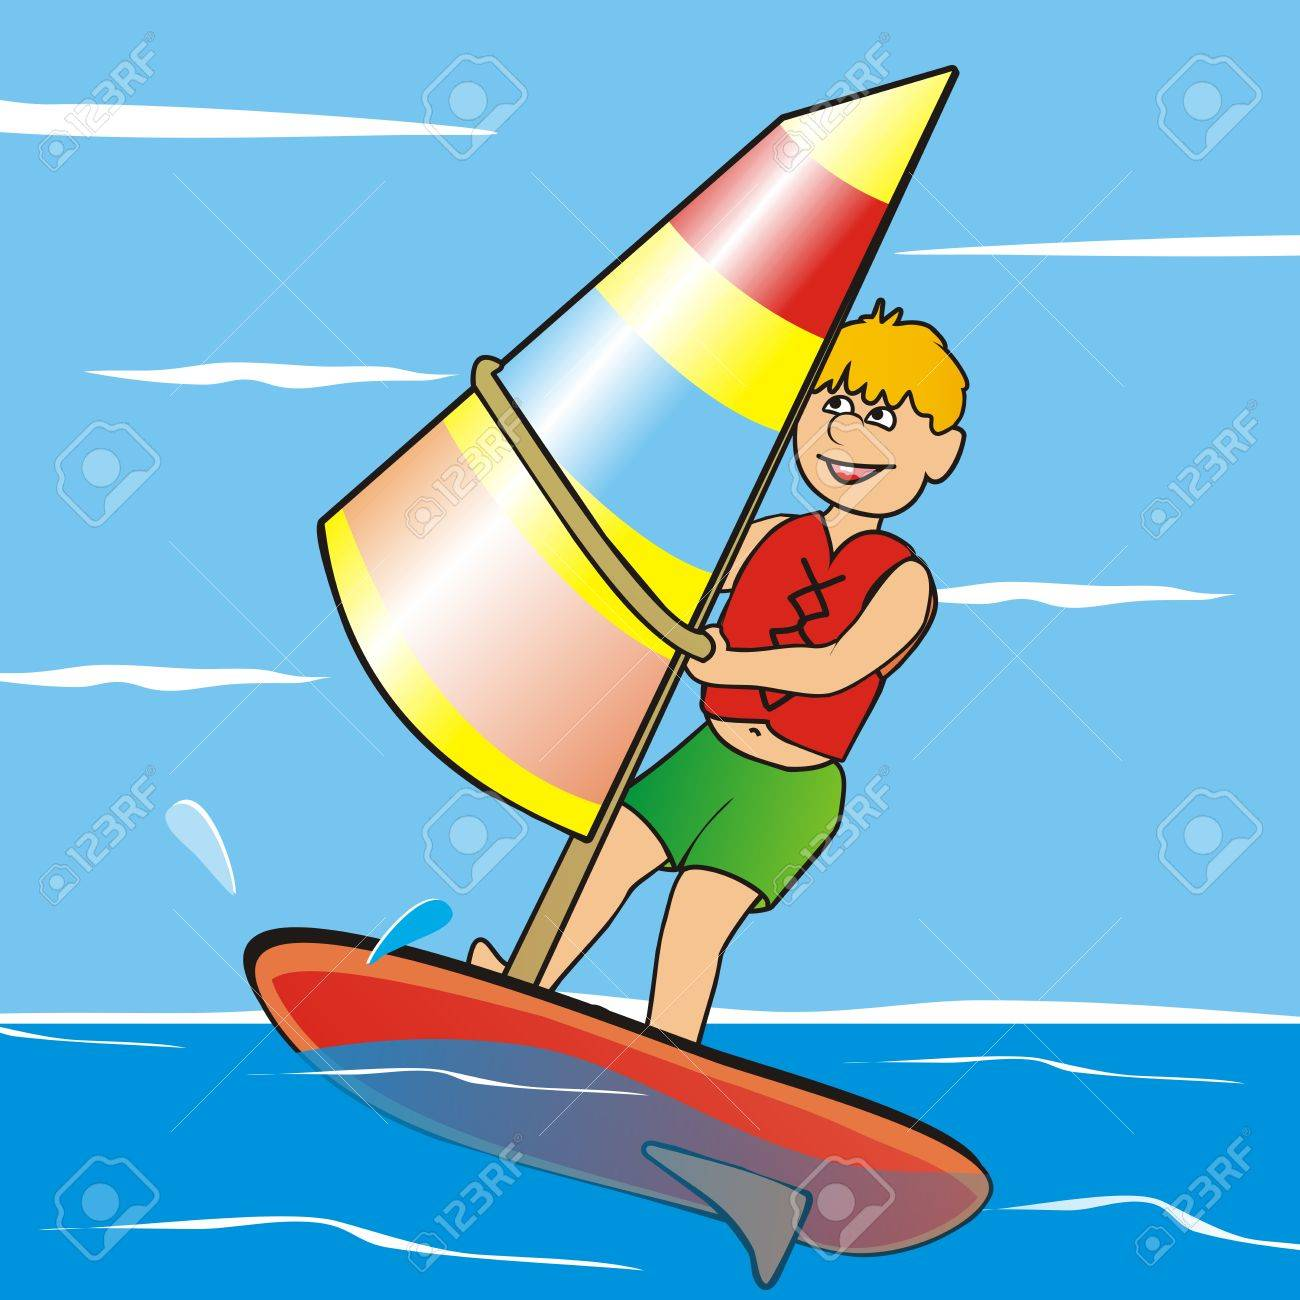 Windsurfing clipart 7 » Clipart Station.